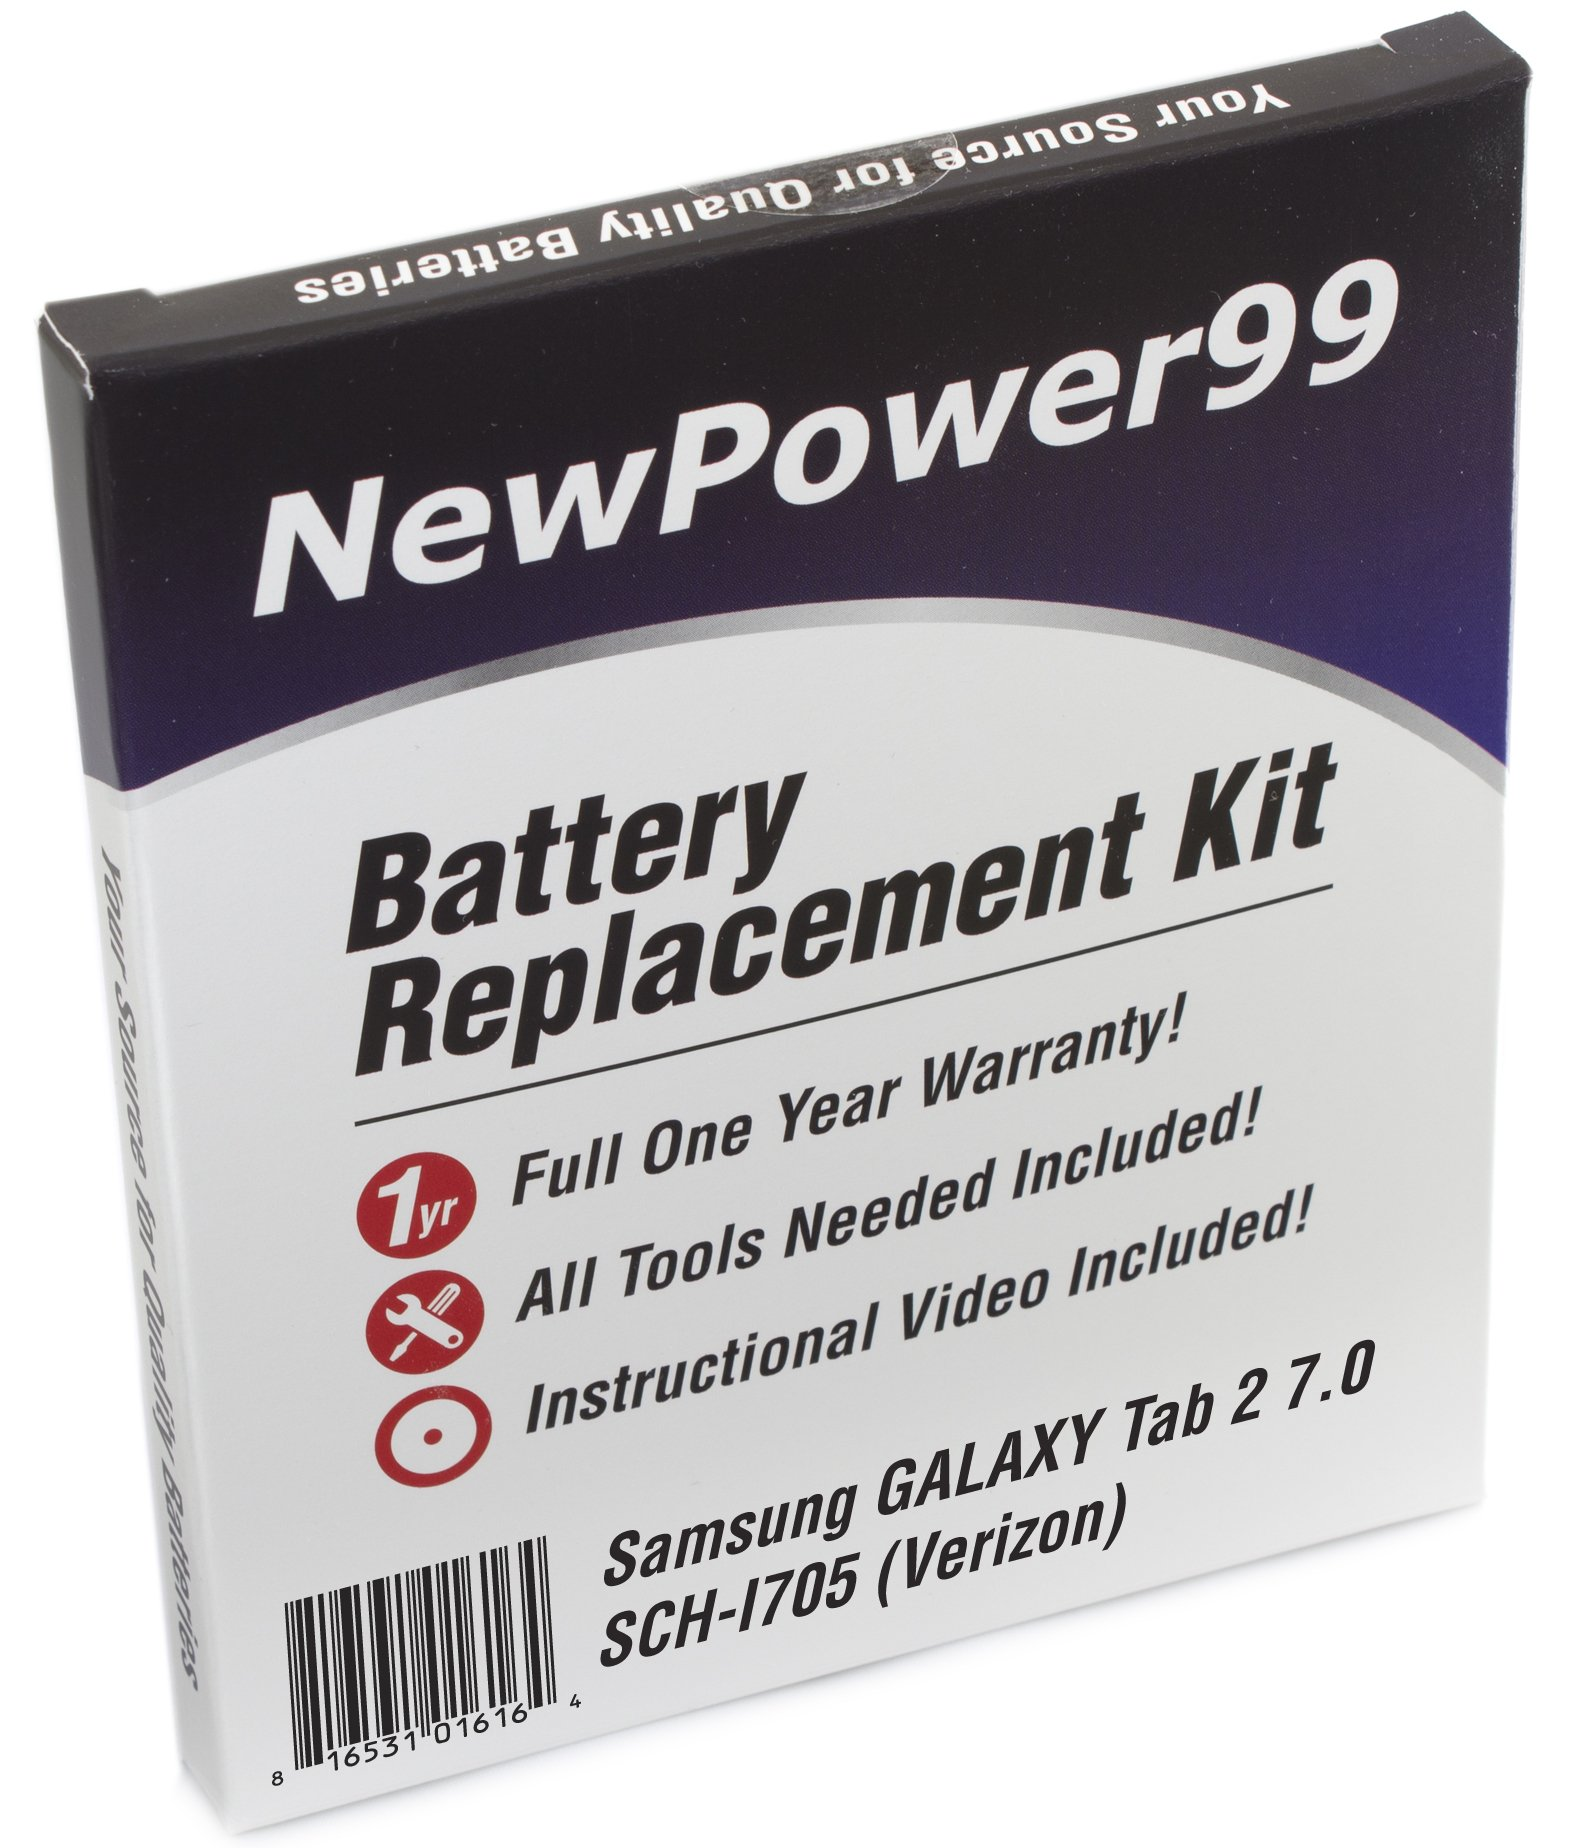 NewPower99 Battery Replacement Kit for Samsung GALAXY Tab 2 7.0 SCH-I705 (Verizon) with Video Installation DVD, Installation Tools, and Extended Life Battery by NewPower99